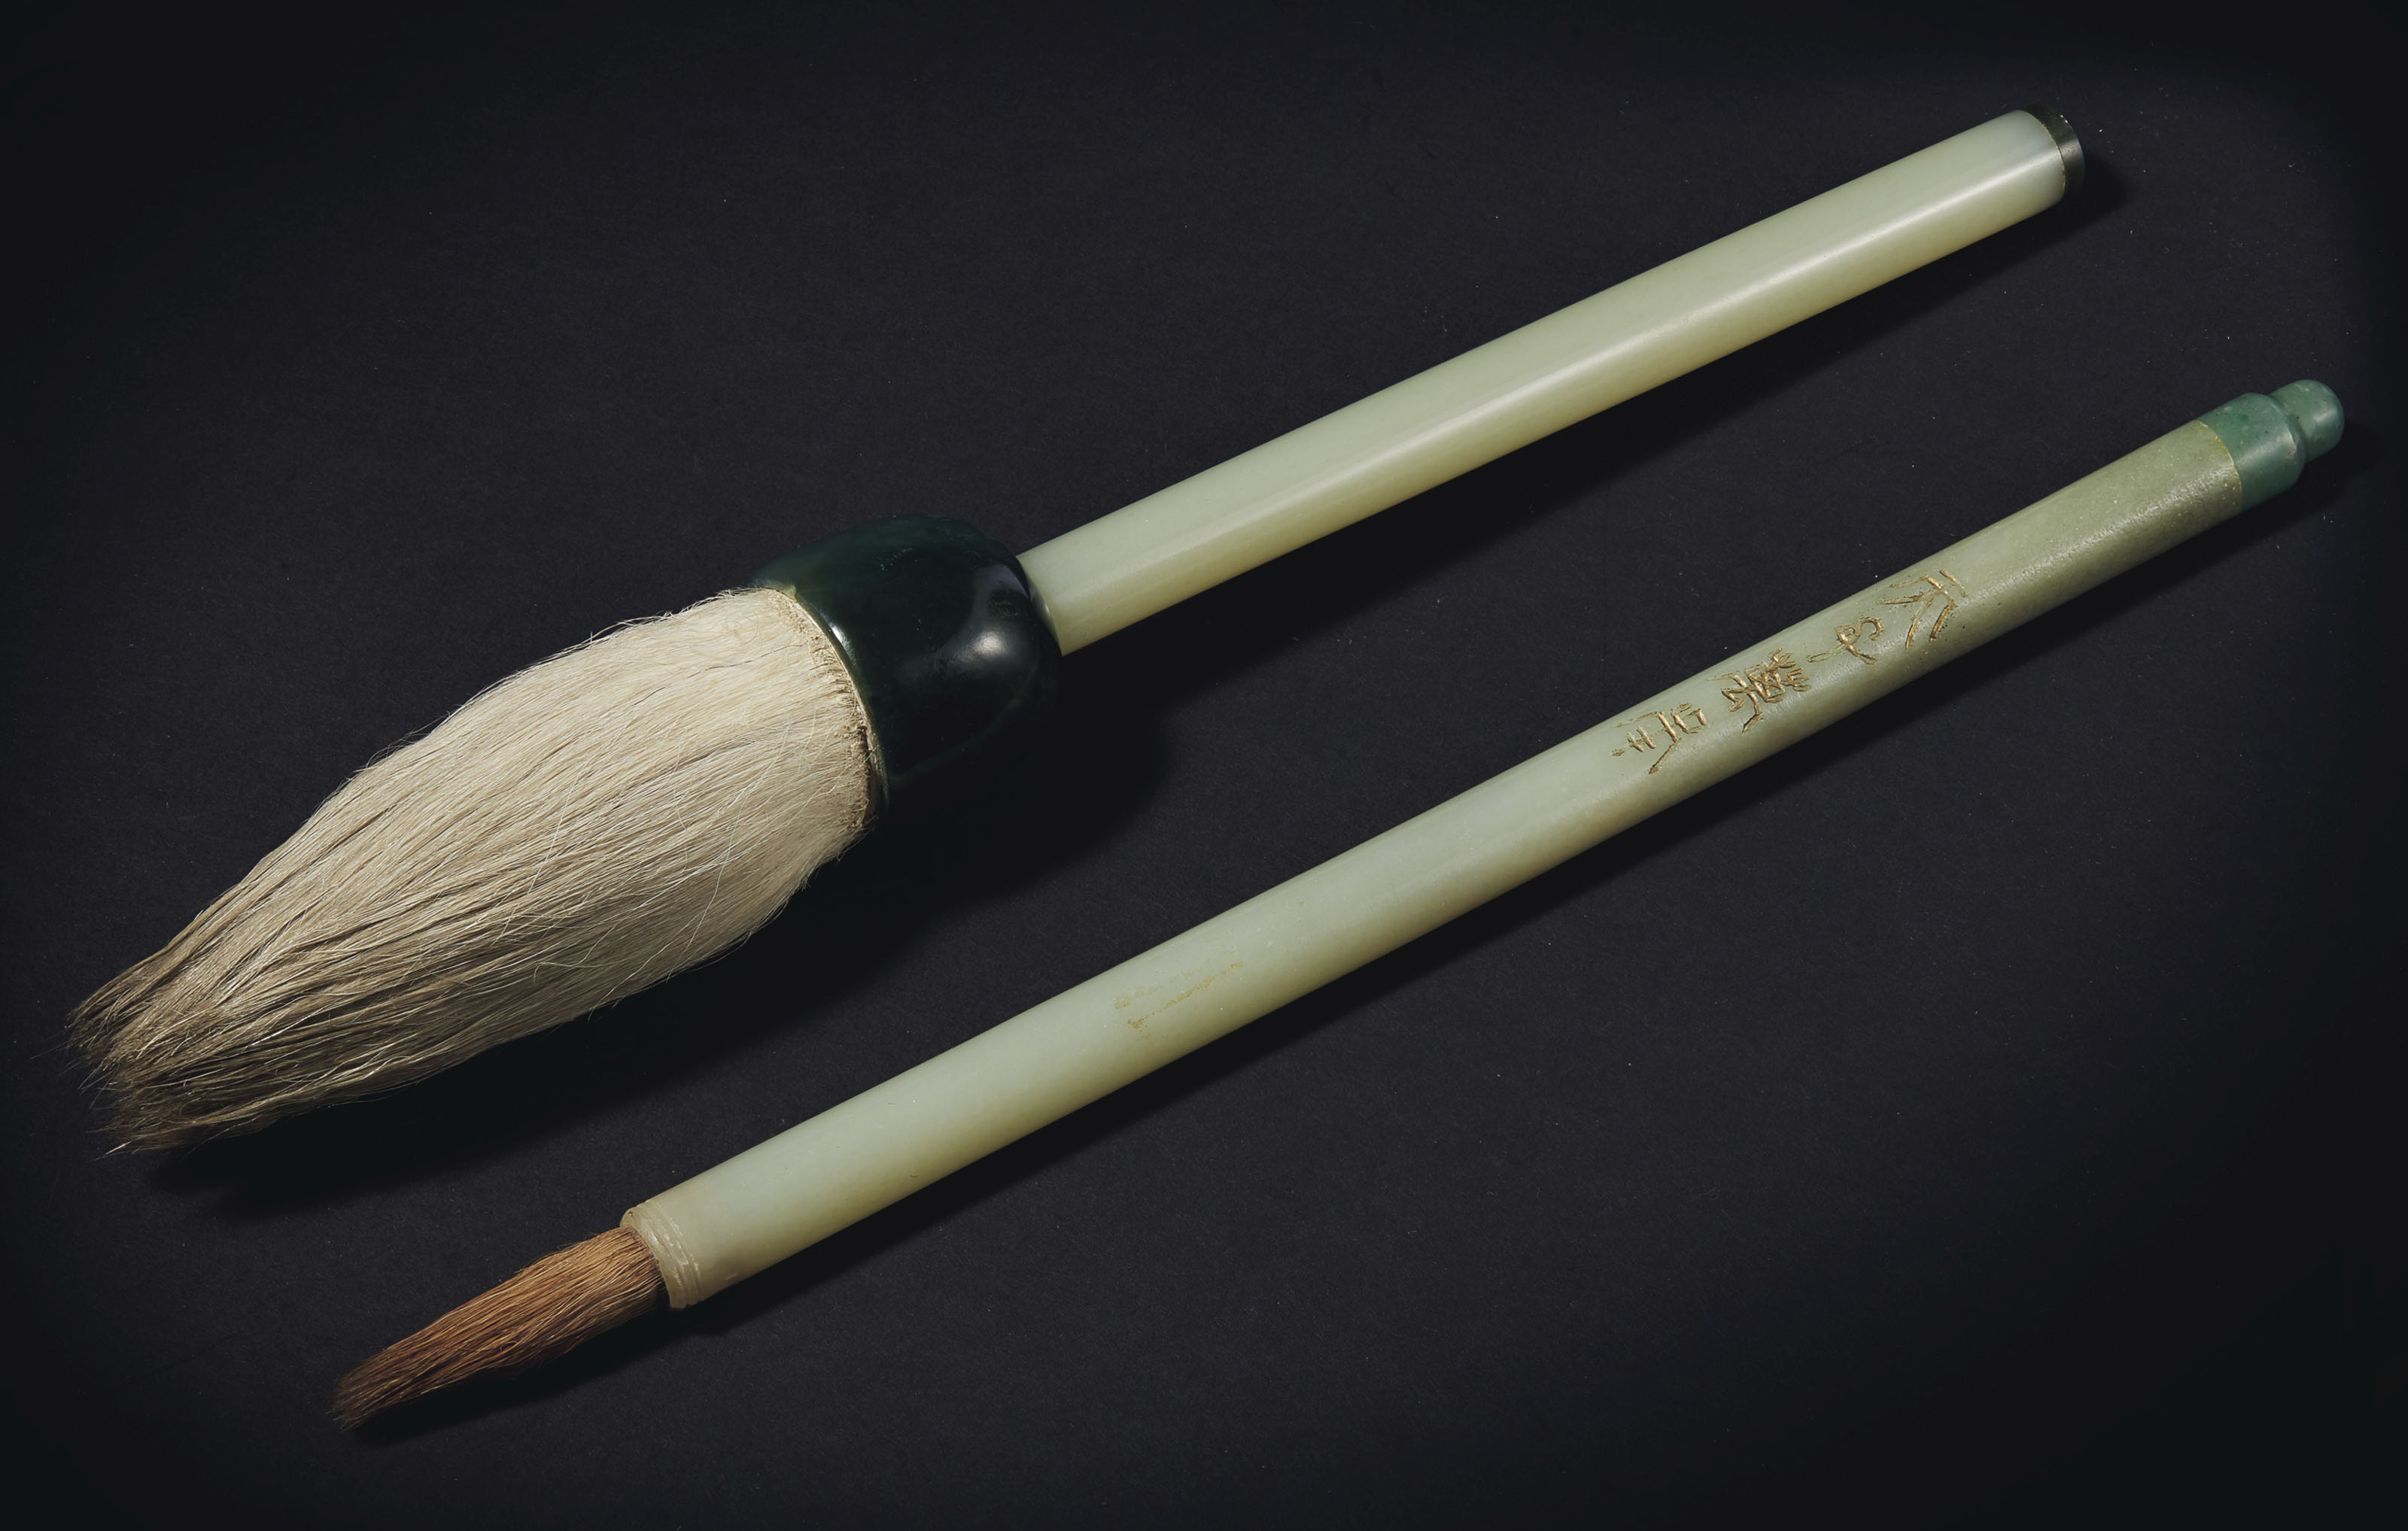 TWO PALE GREENISH-WHITE AND SPINACH-GREEN JADE BRUSHES